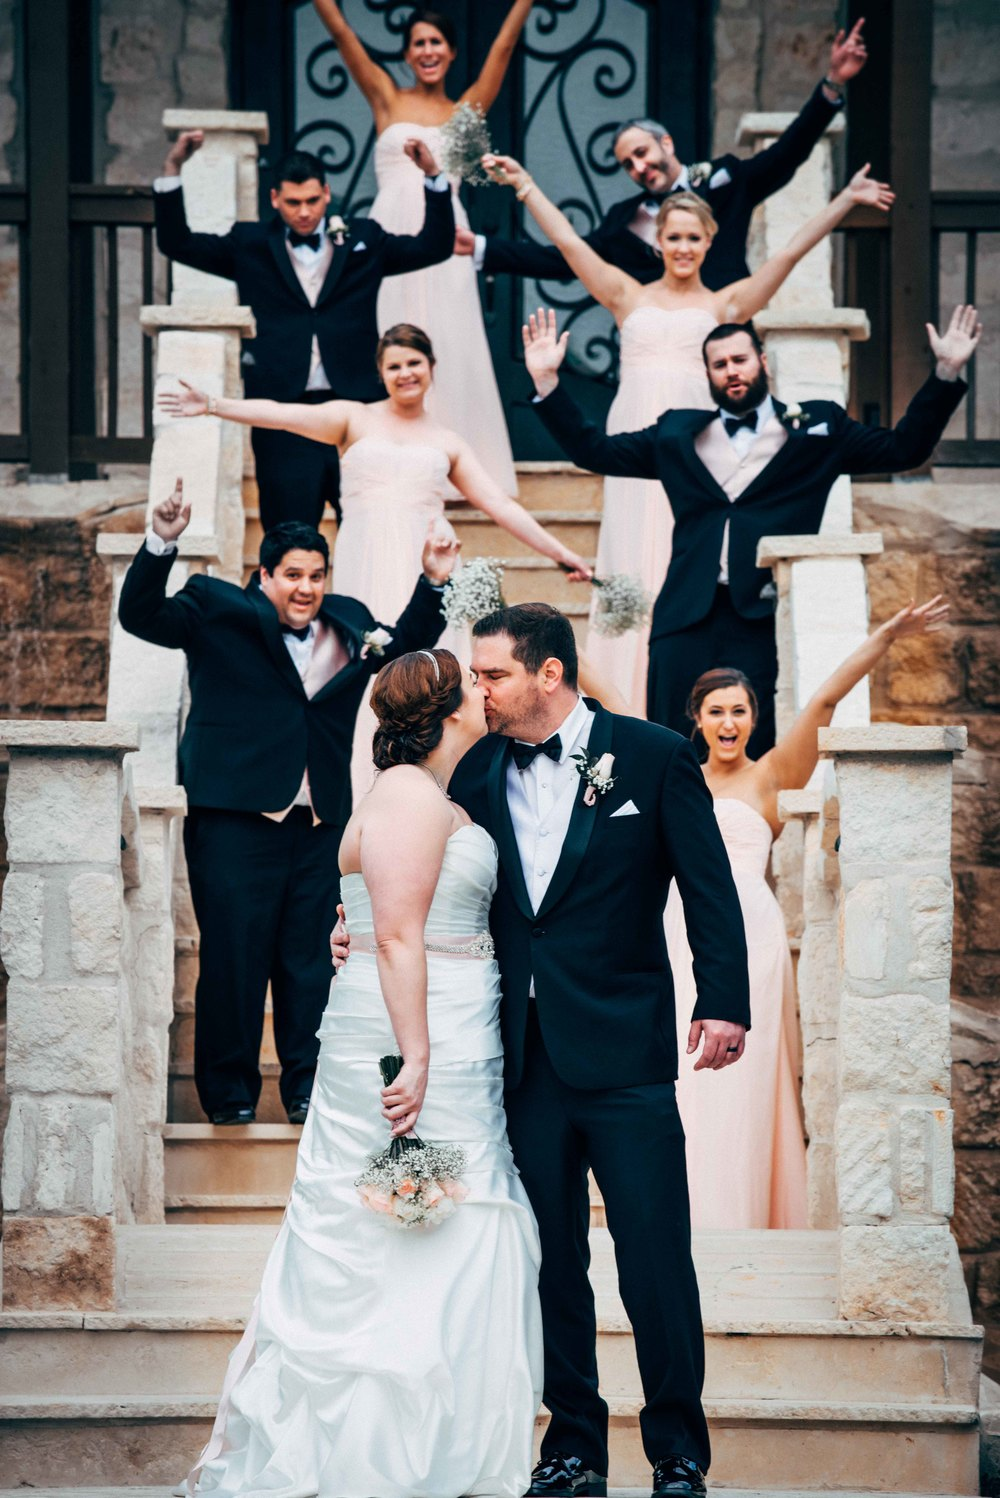 Dallas Wedding - Heritage Springs - Katie and Dustin - Bridal Party Celebrating